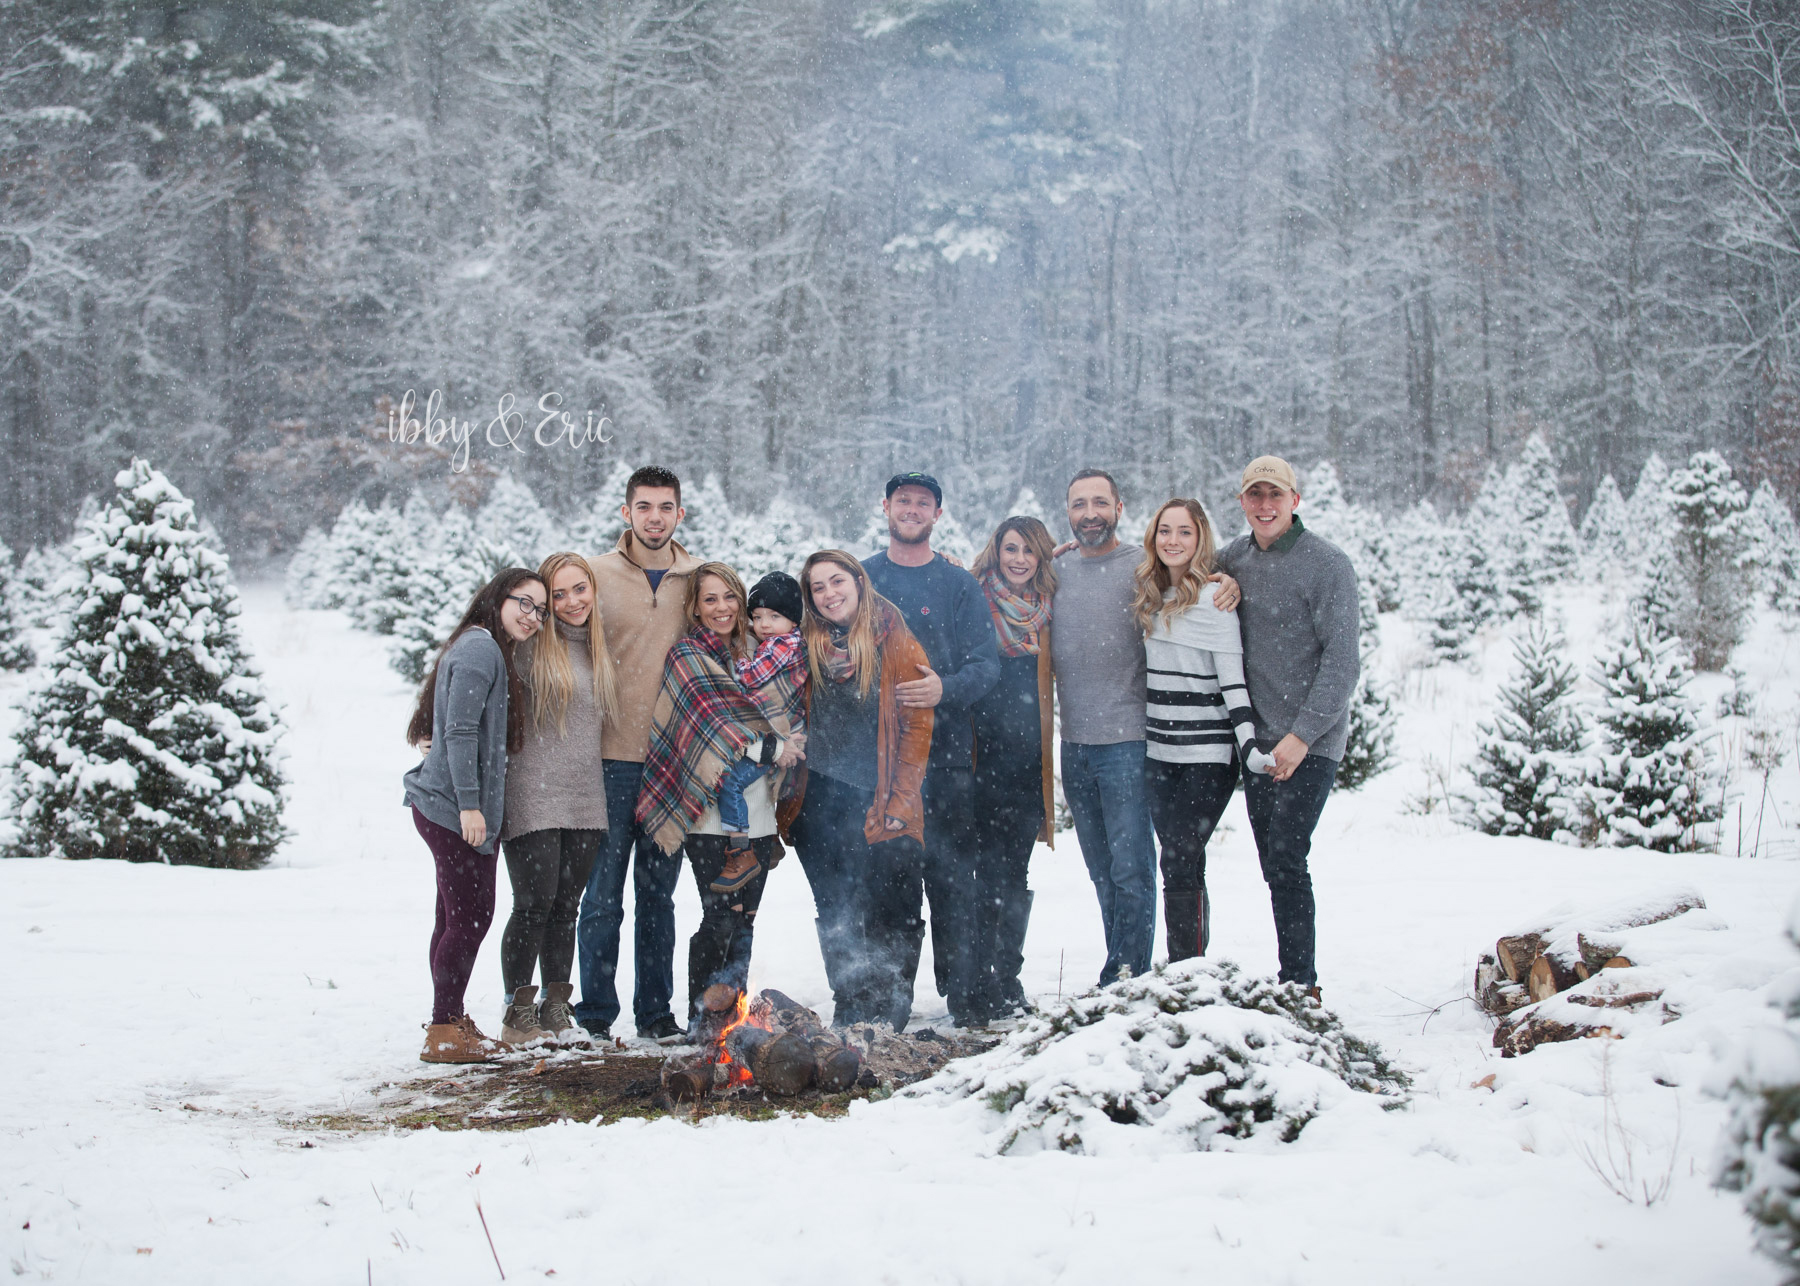 Family of 11 gathers around a fire during a snowstorm in western Massachusetts.